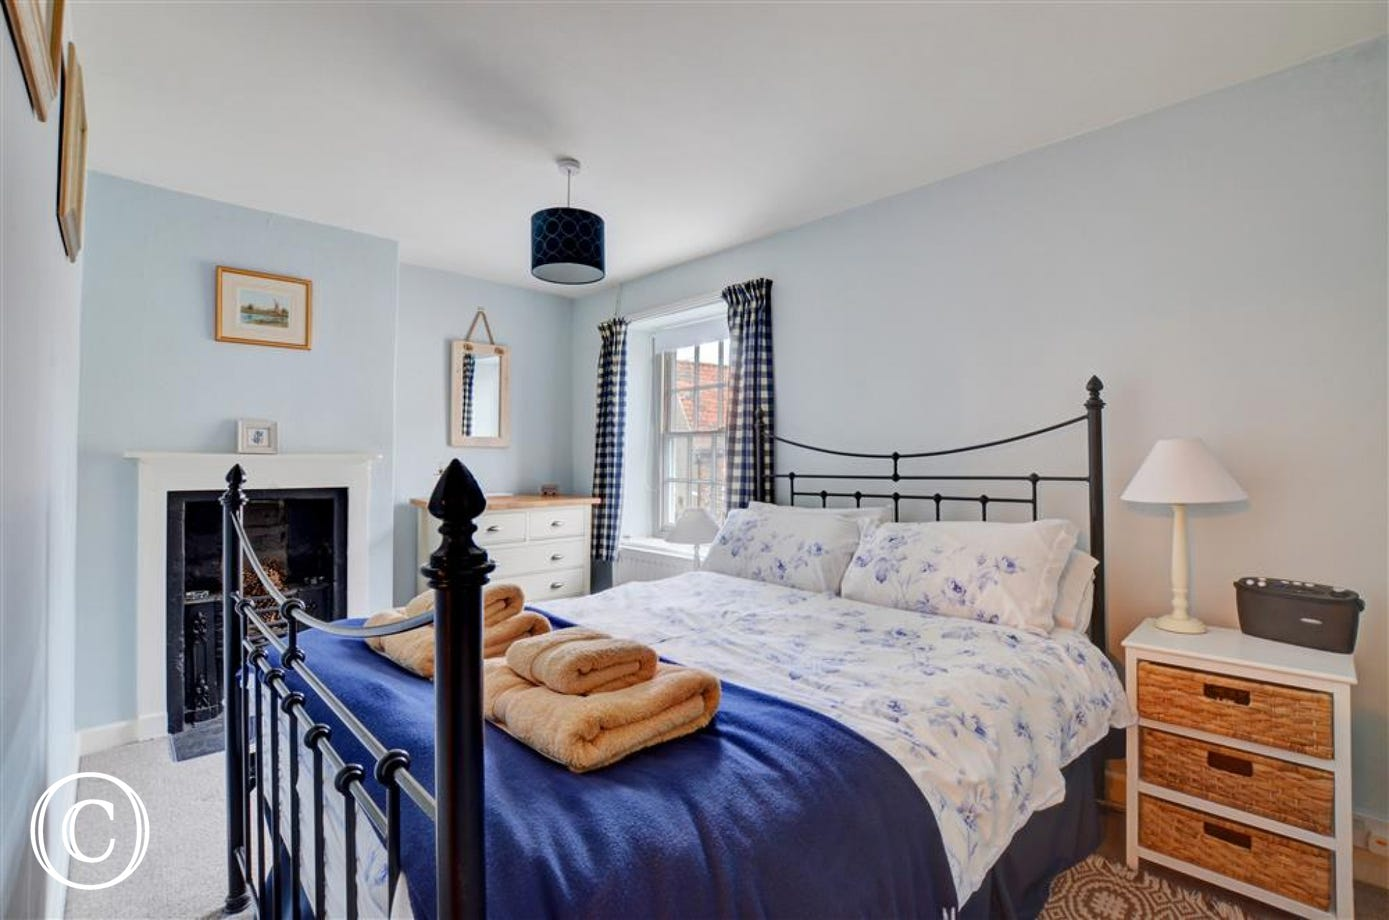 Beautiful double bedroom in blues and white, with wrought iron bed and feature fire place.